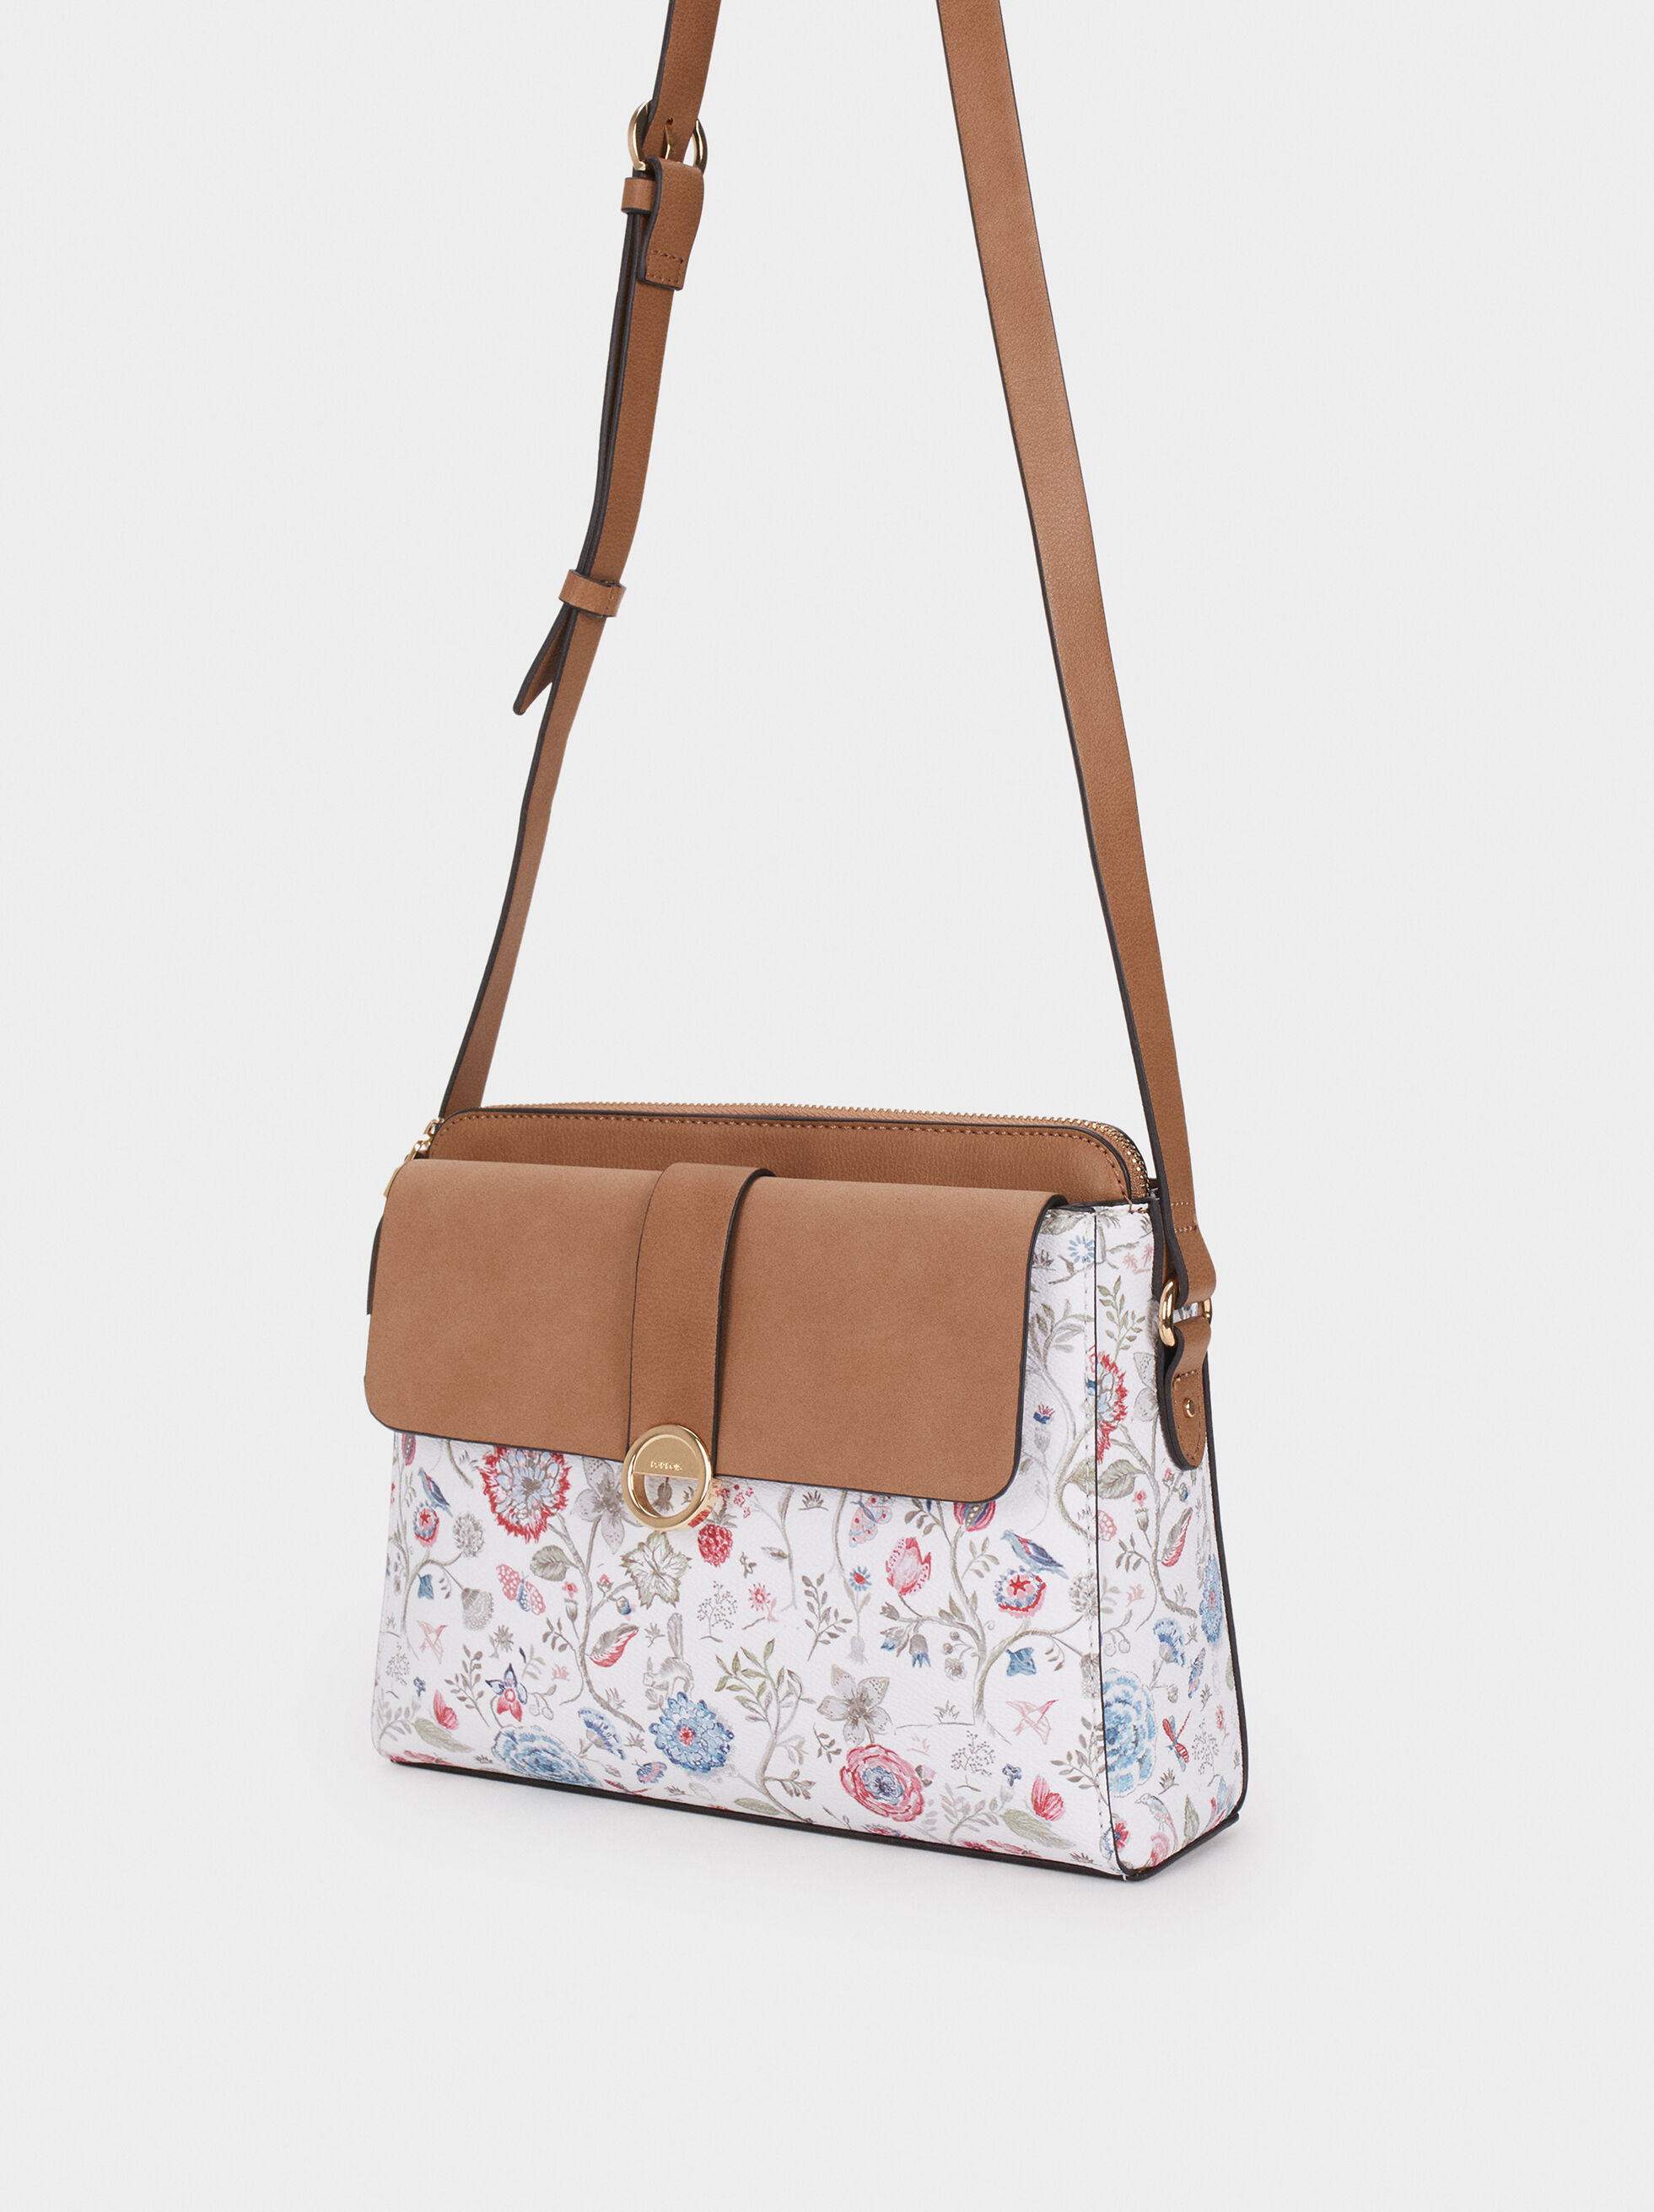 Floral Print Shoulder Bag, Pink, hi-res